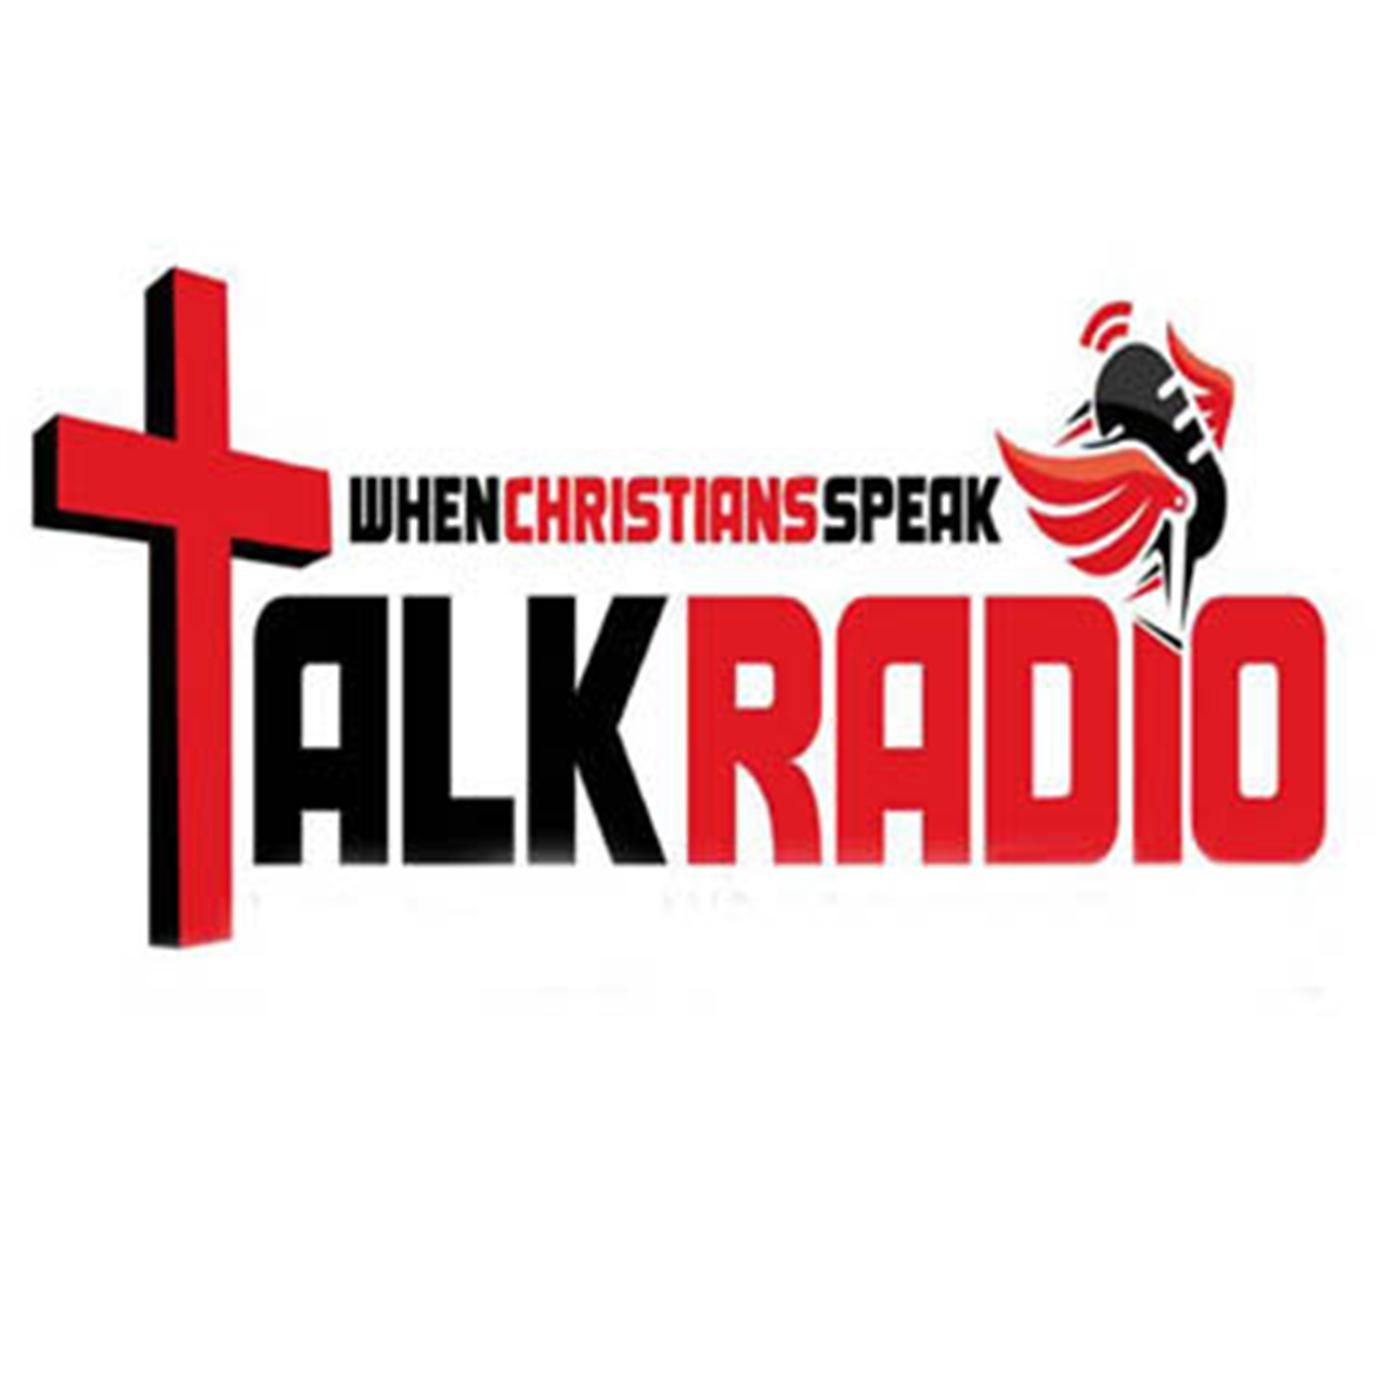 When Christians Speak Talk Radio Inc.